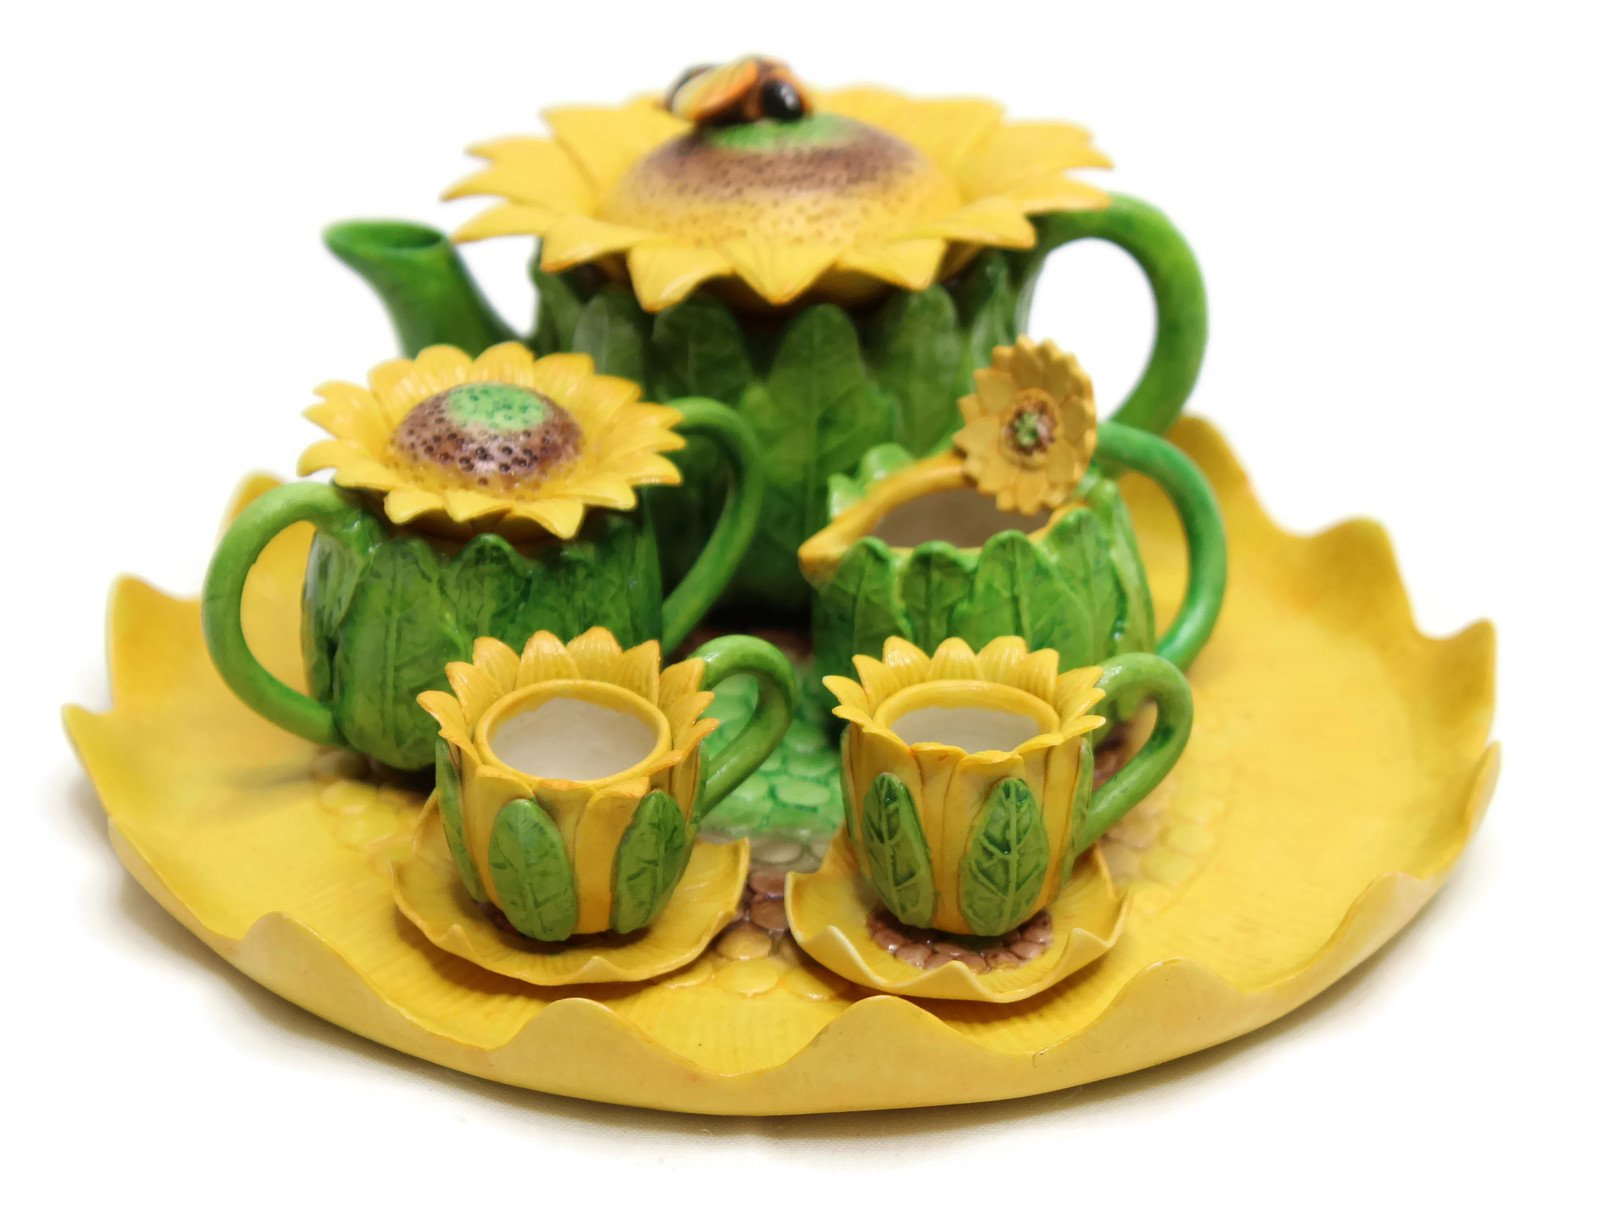 Unique Design Porcelain Miniature Tea Set –Sun Flower- for Home, Fairy Garden, Mini Garden, and Dollhouse Decoration, Collectible Item.